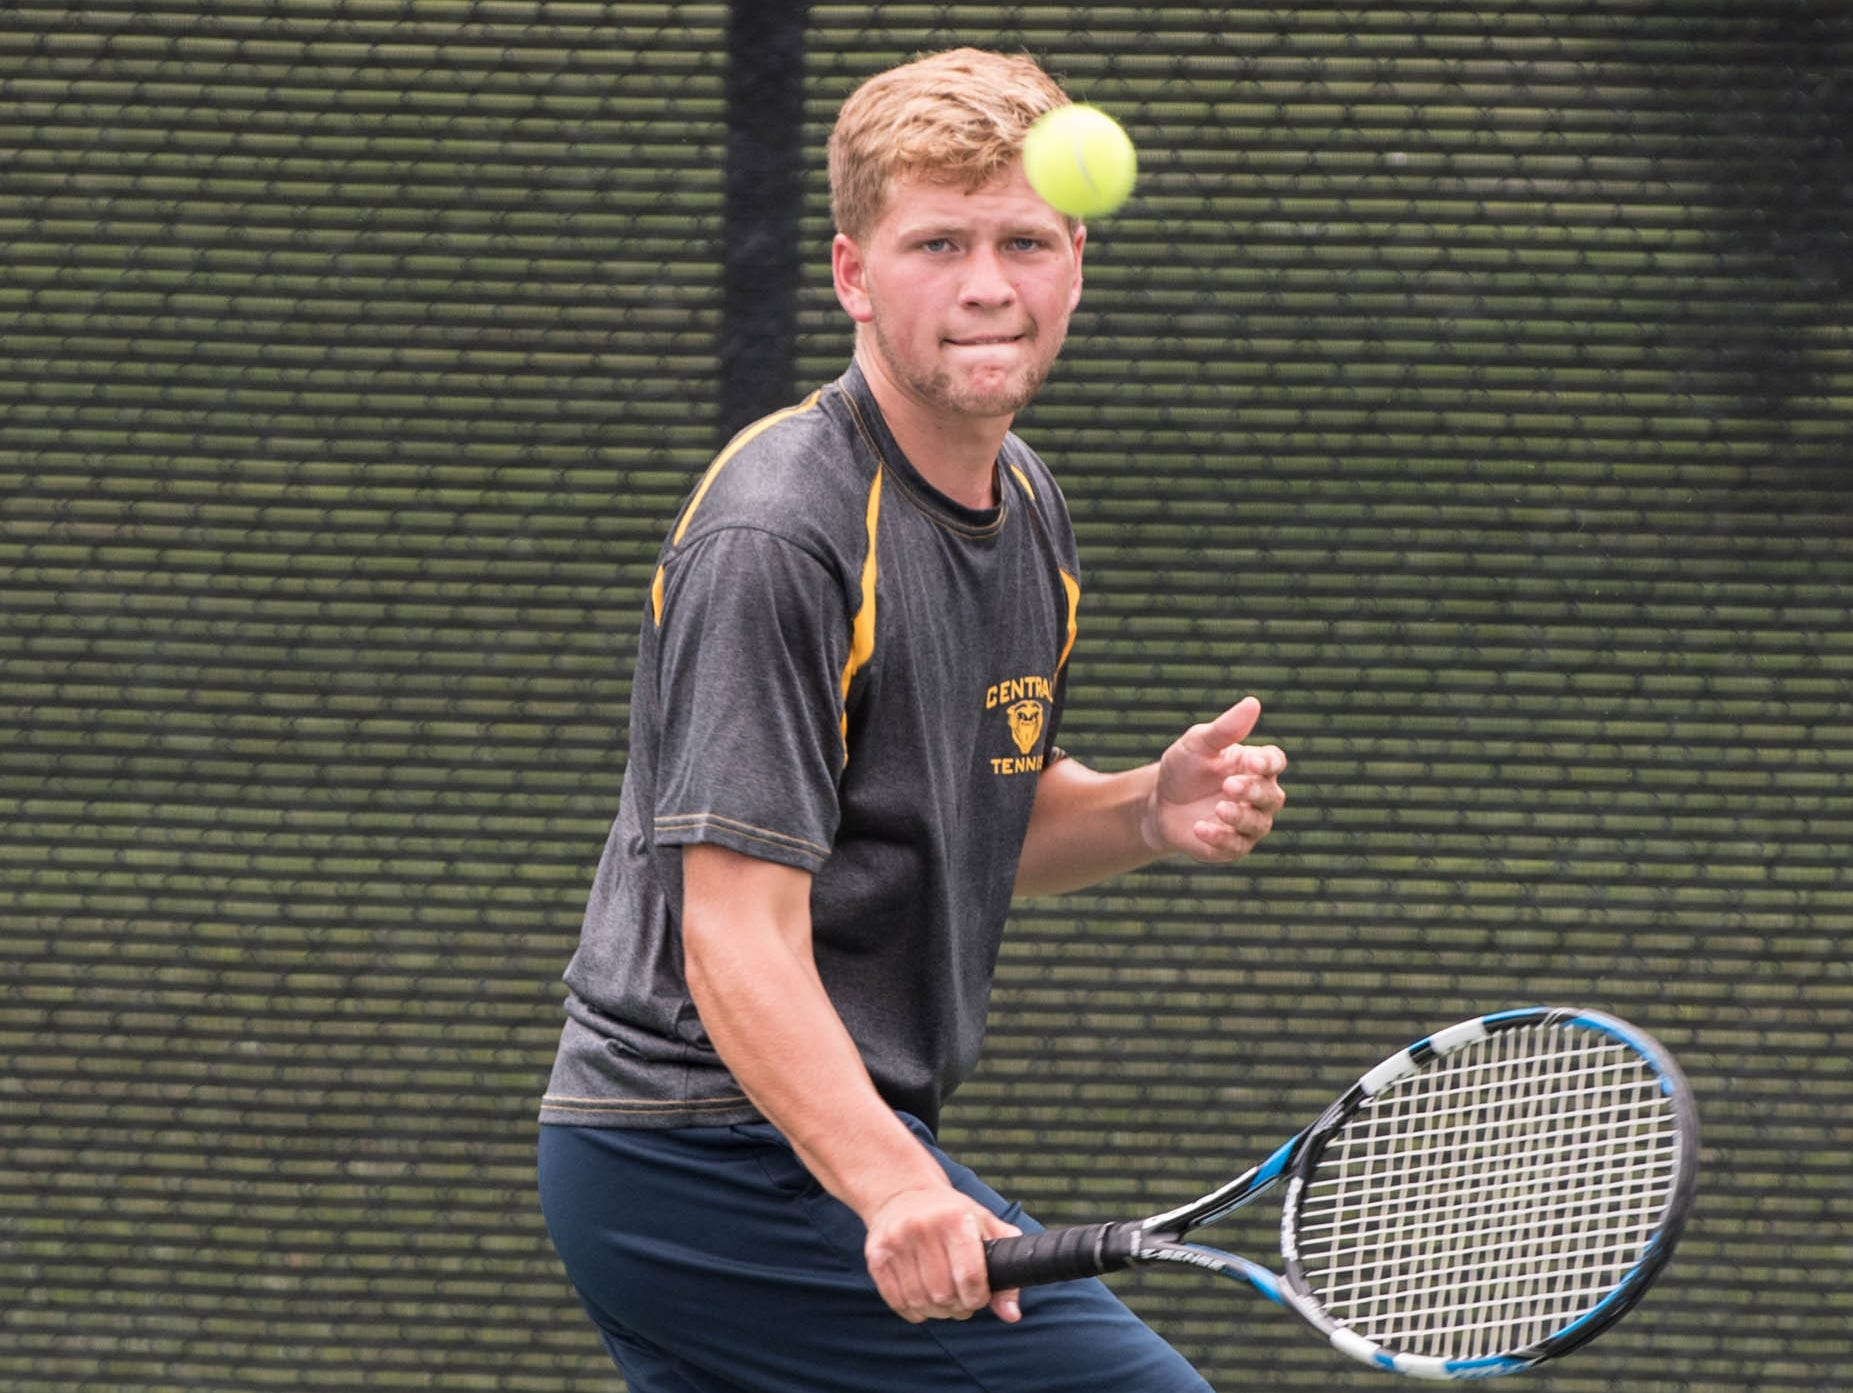 Battle Creek Central's Riley Crammer during the All-City Tennis on Aug. 25.